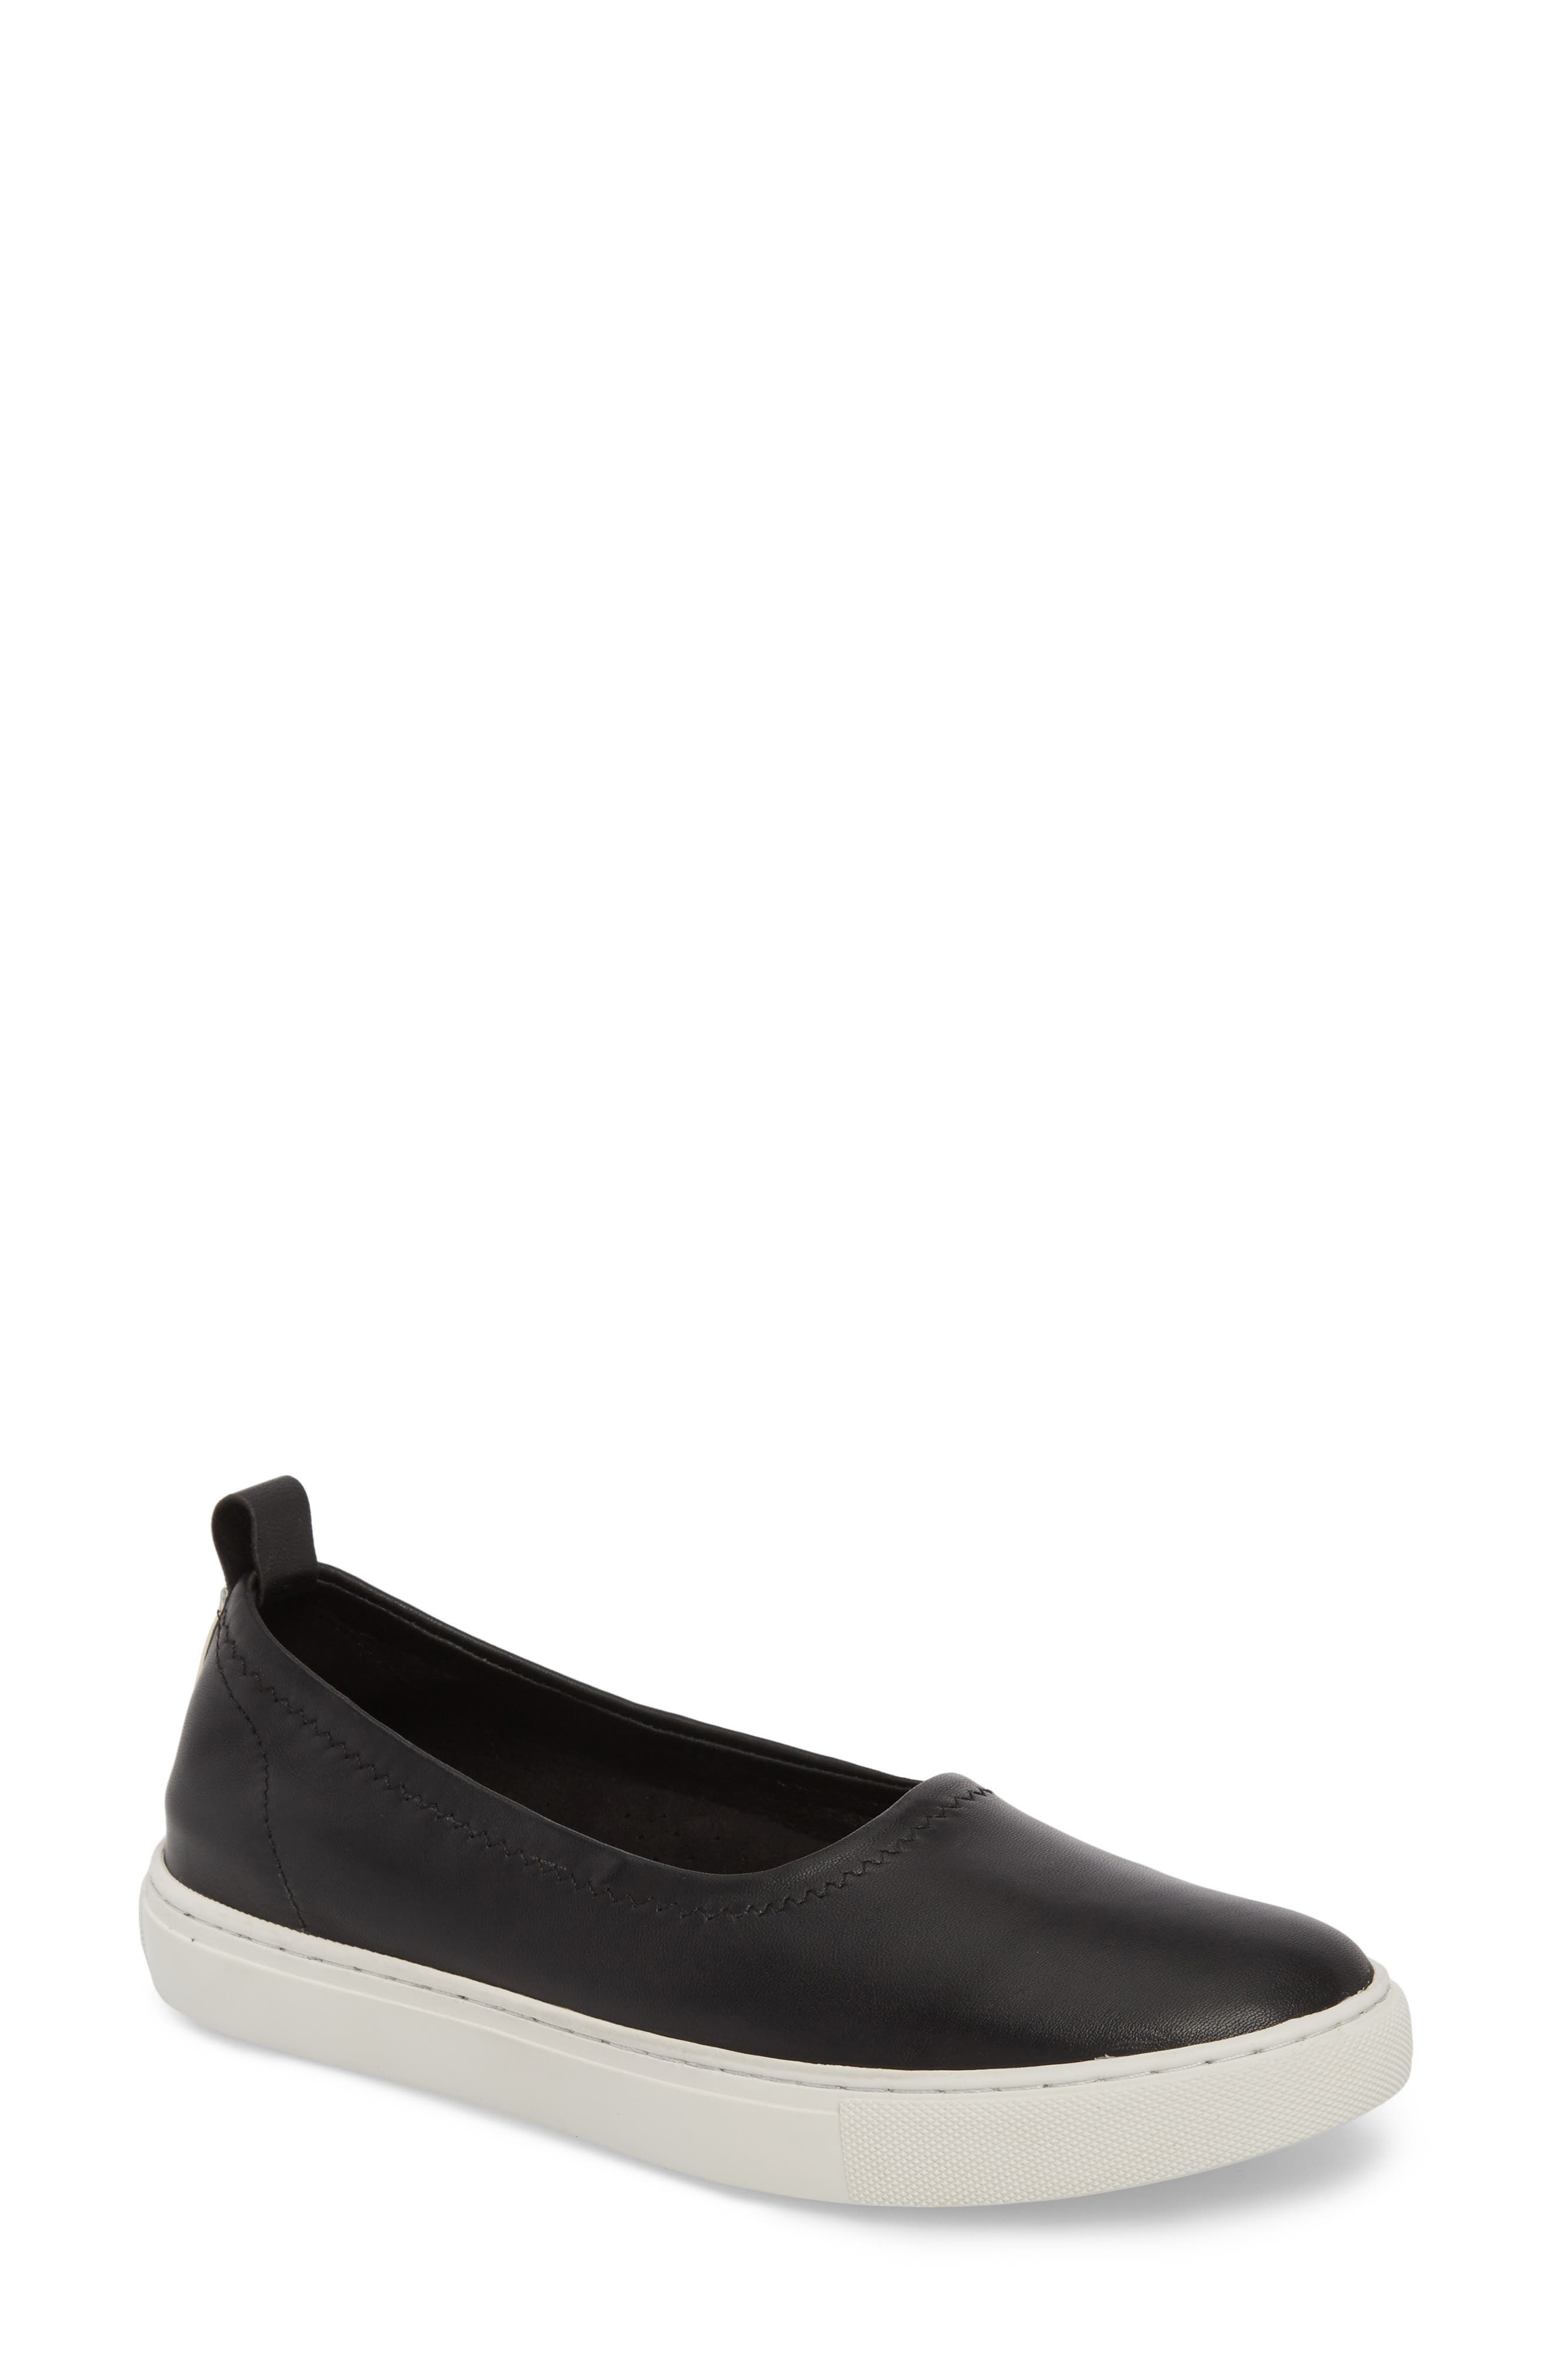 Kam Techni-Cole Ballet Flat,                         Main,                         color, Black Leather